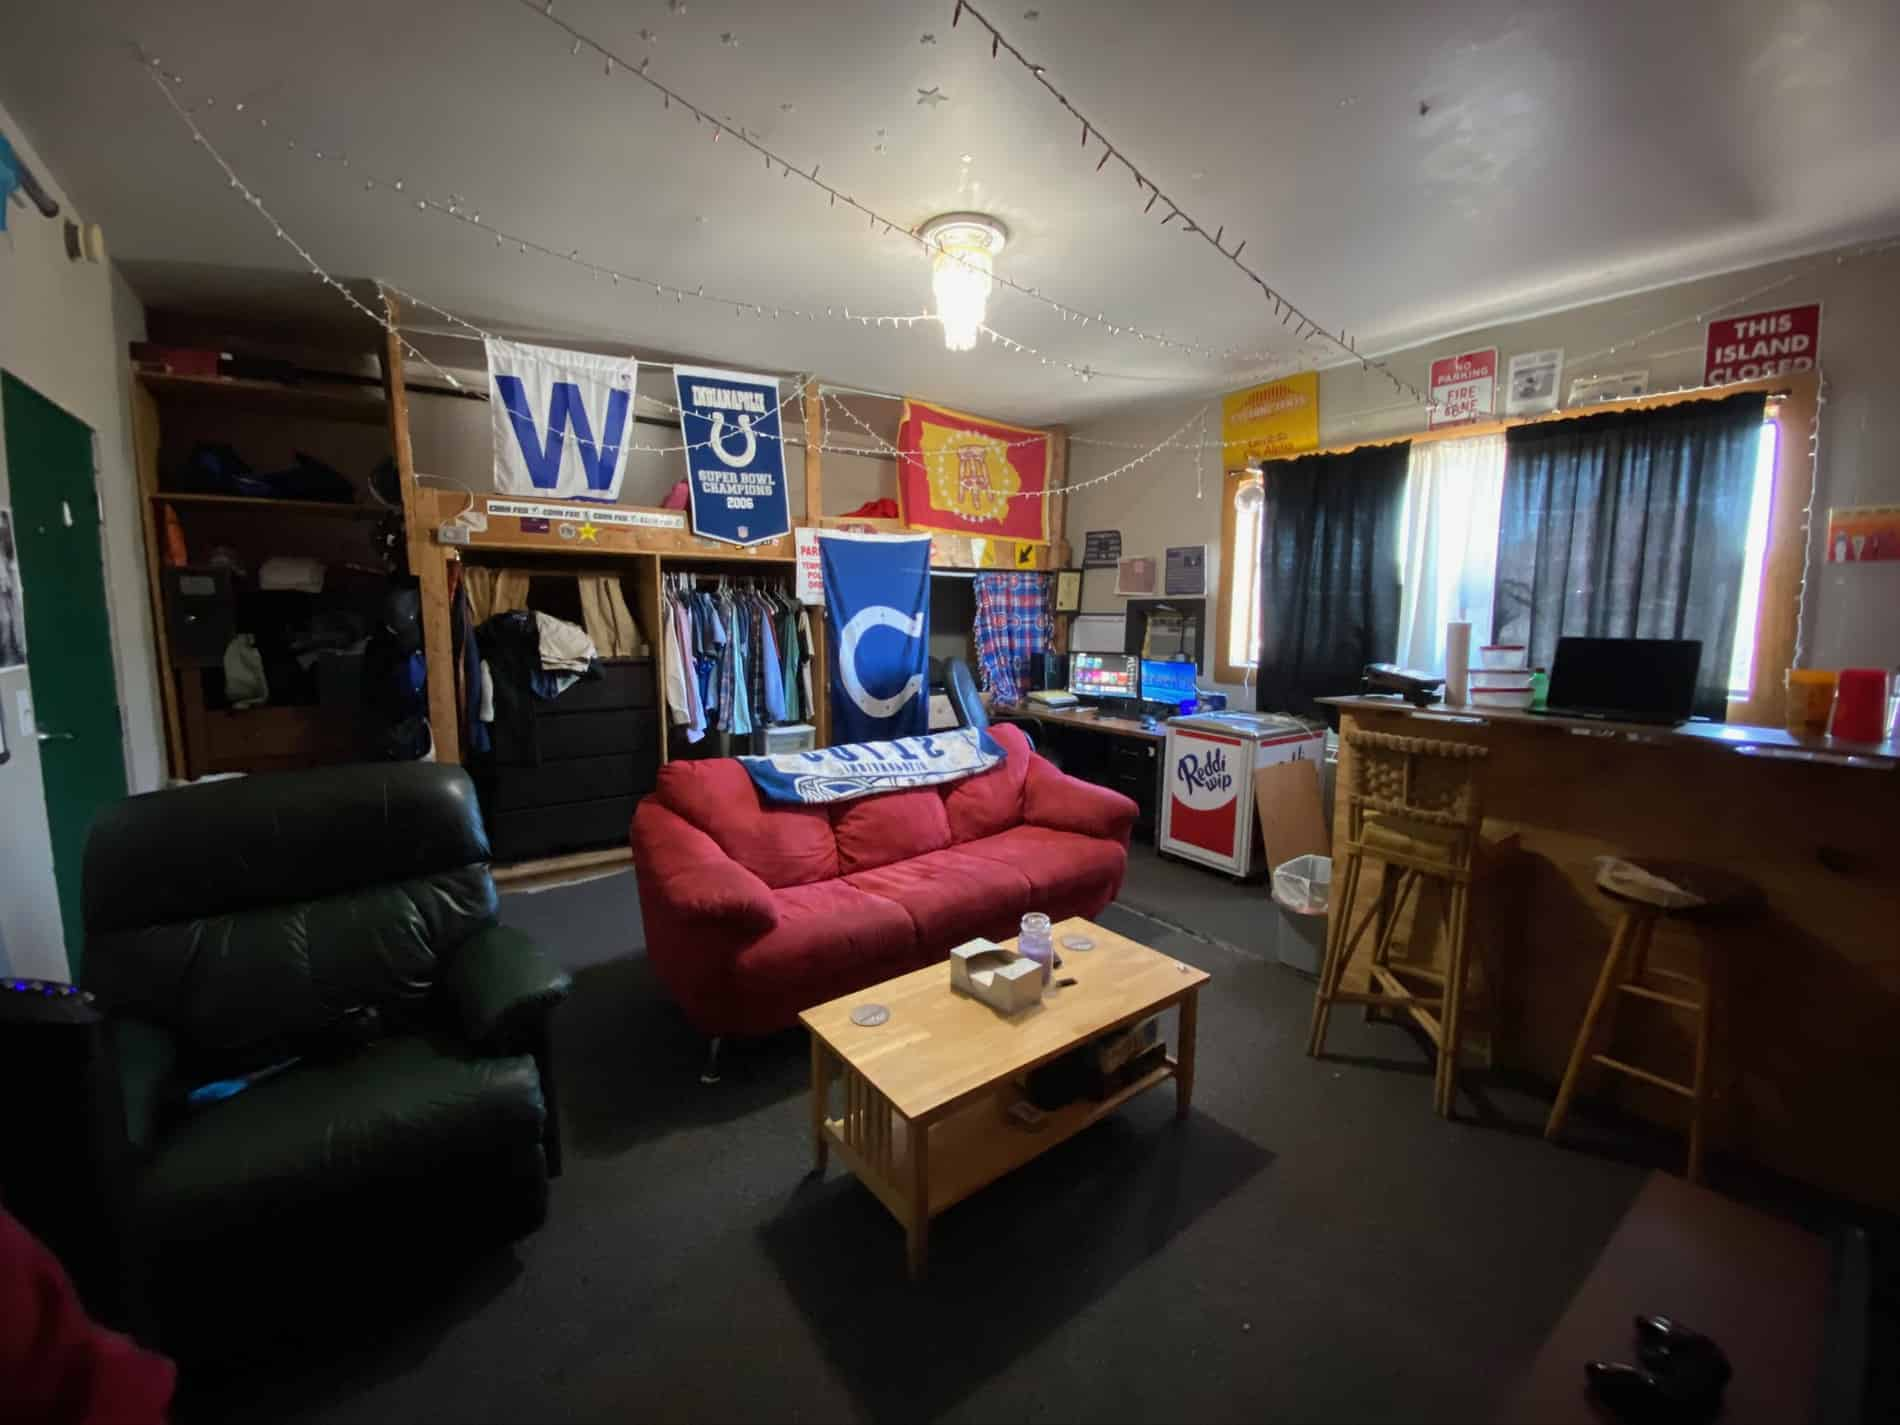 One of two Lambda Chi Alpha officer suites. Each suite is given to the president and vice president and a roommate of their choosing until their term ends.